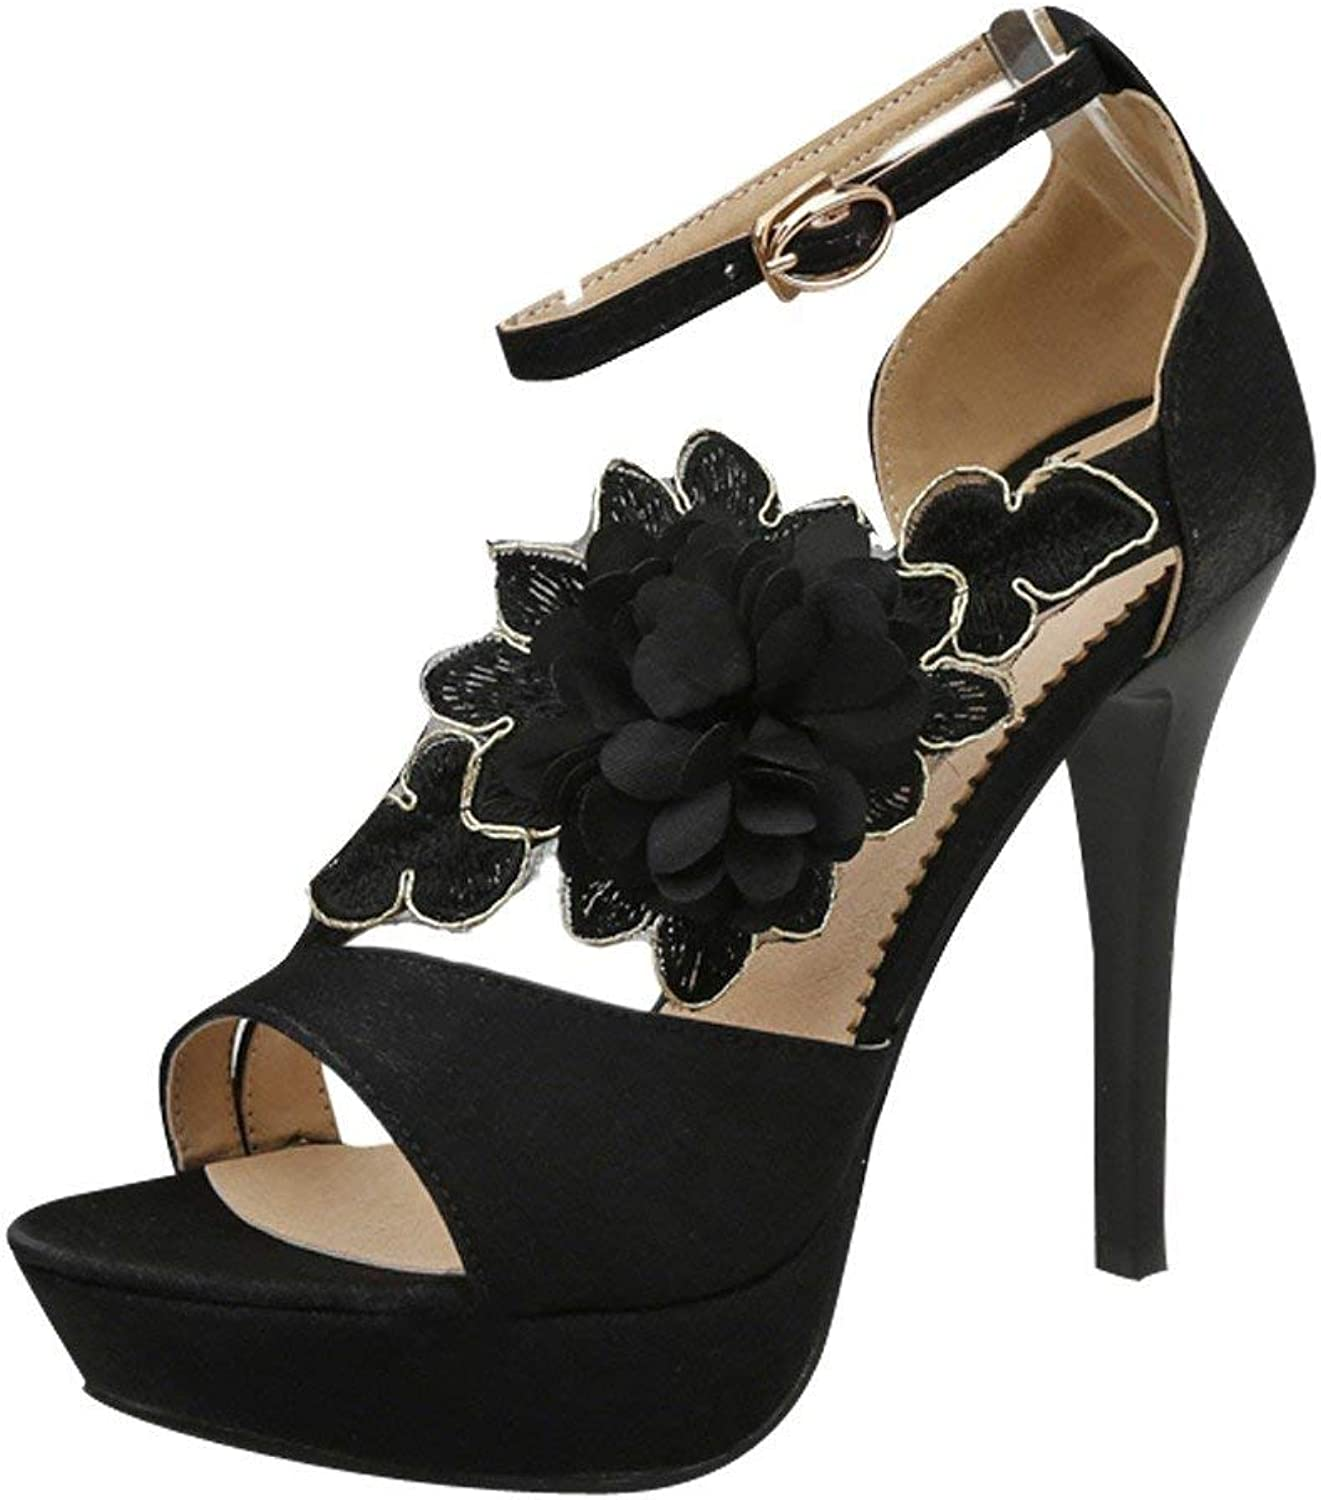 Ghapwe Women's High Heel Open Toe Flower Platform Heeled Sandals Black 8 M US